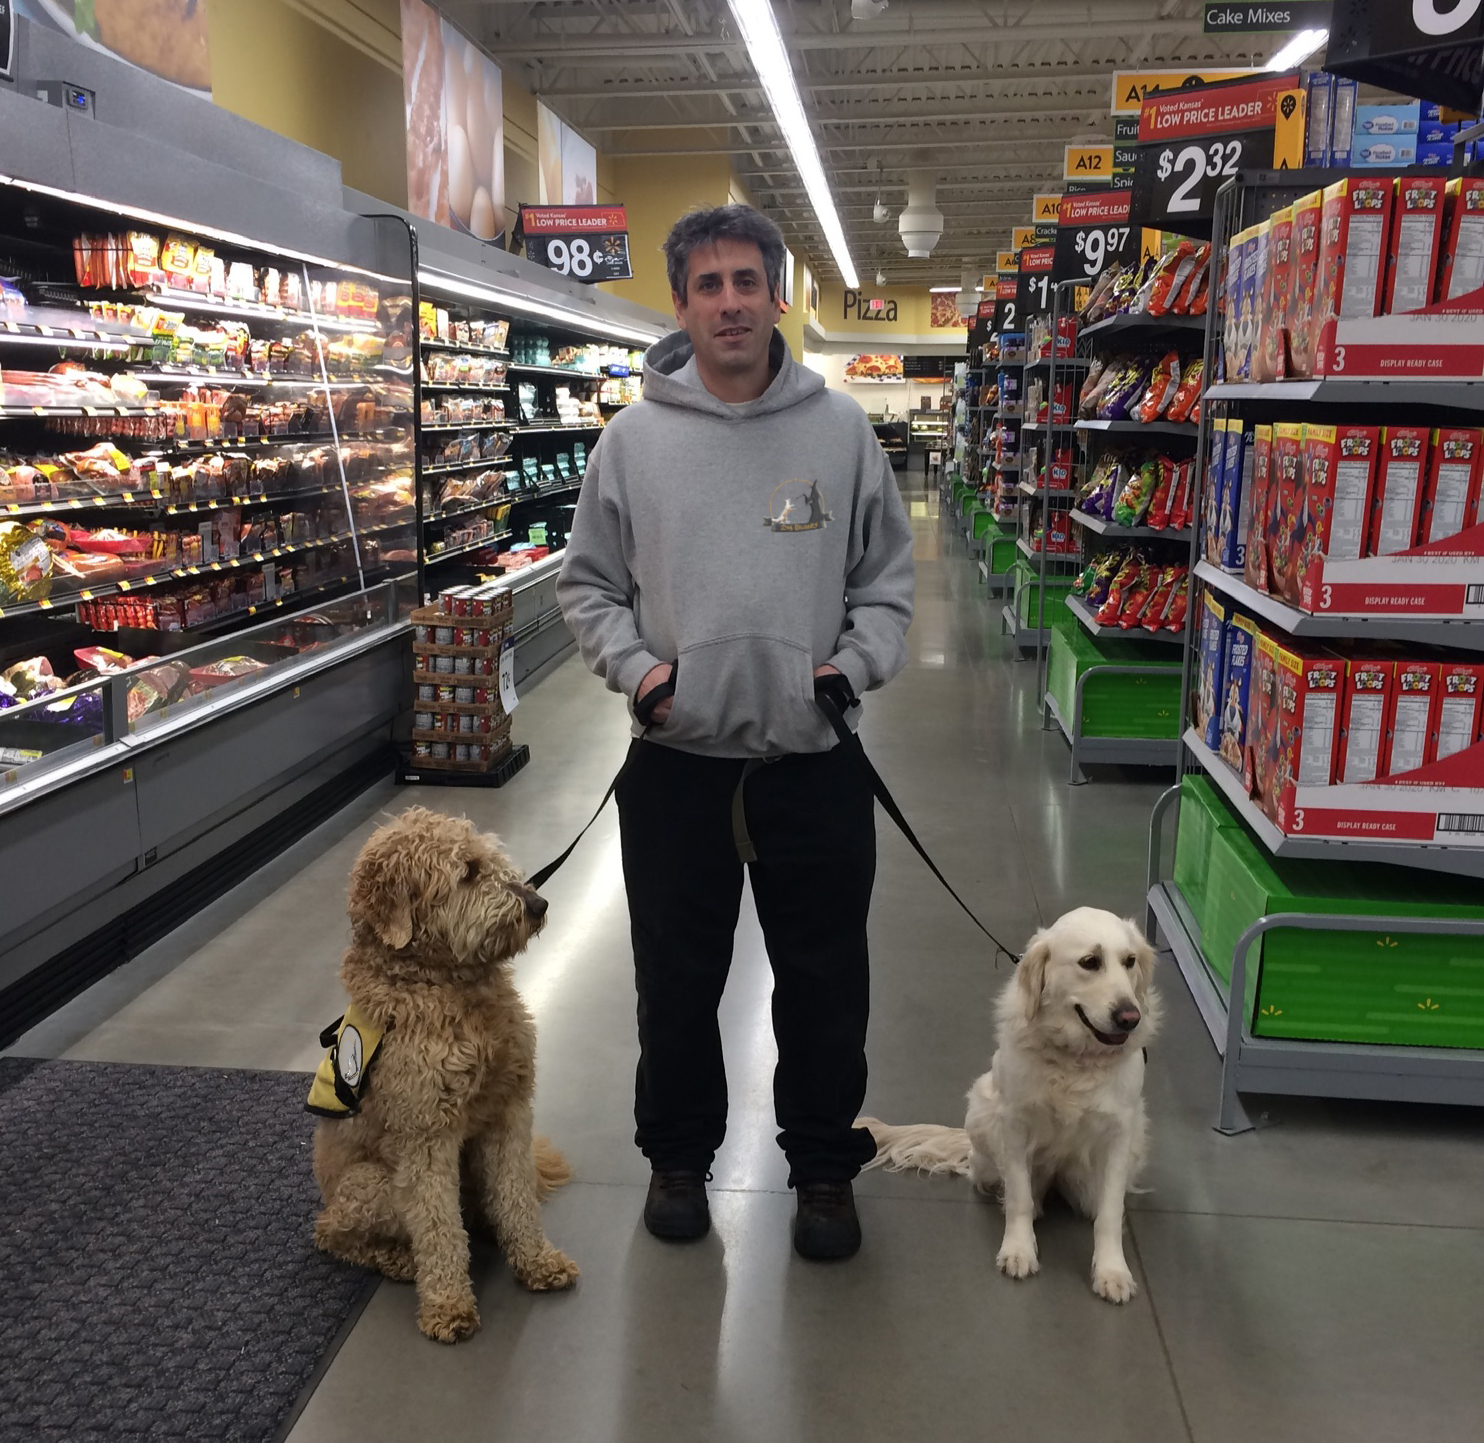 service dogs at a supermarket